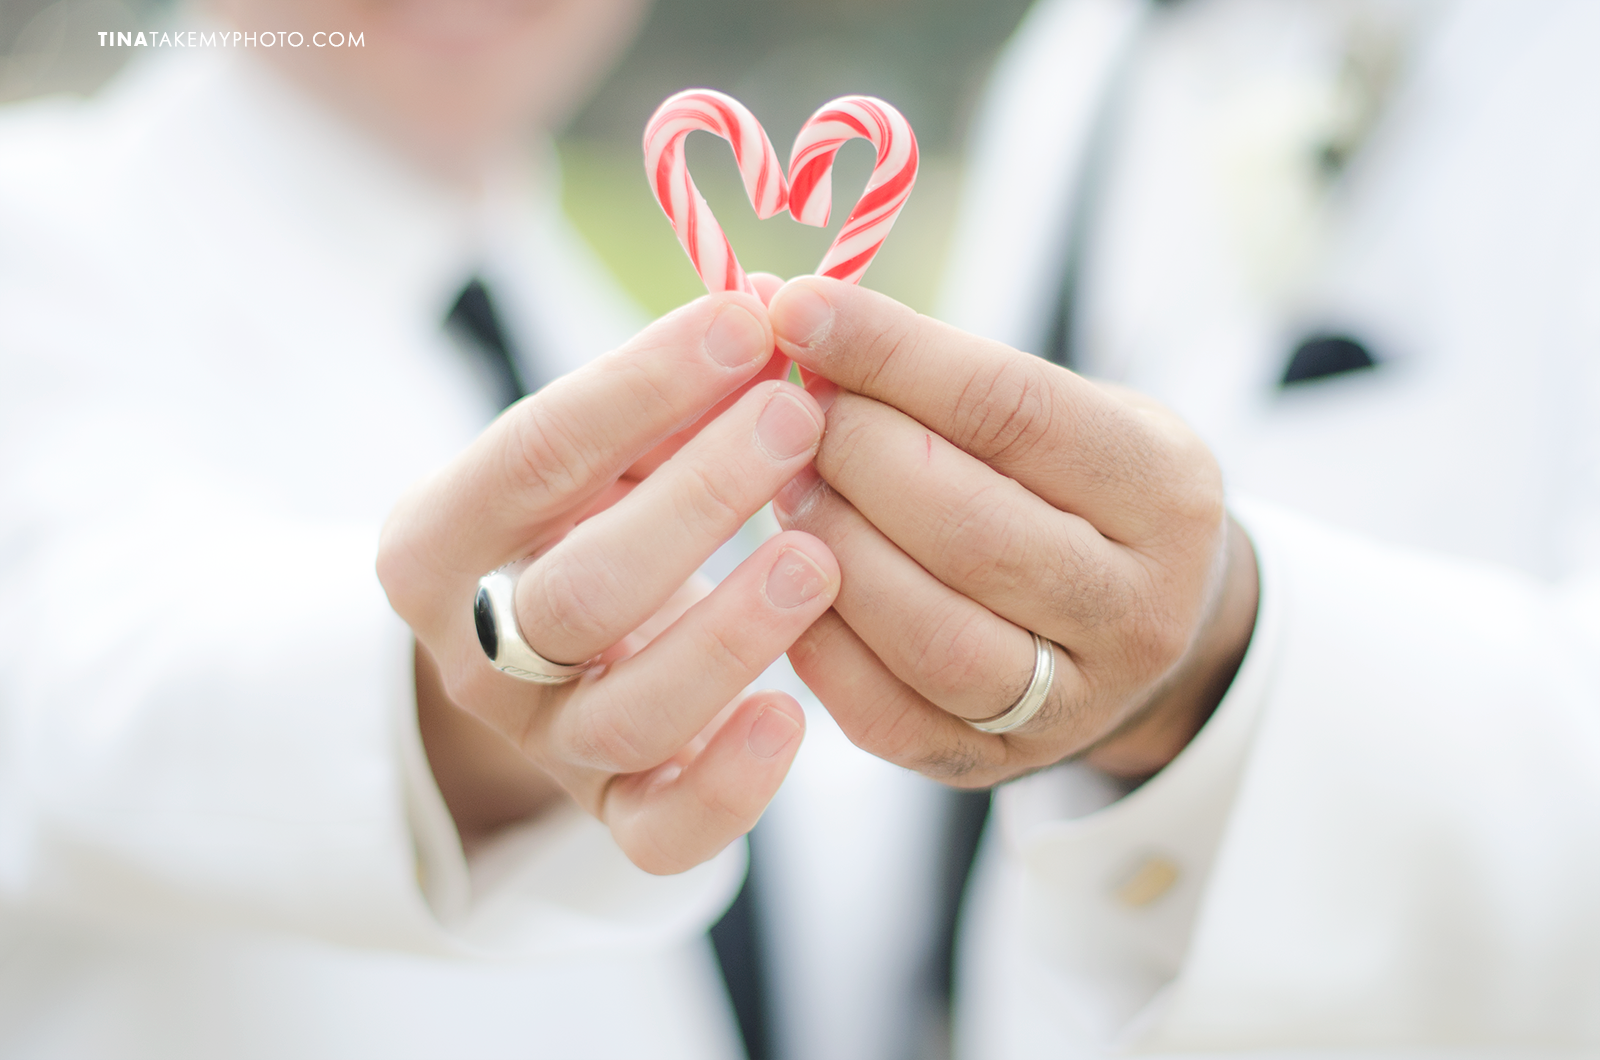 27-Washington-DC-Virginia-Gay-Same-Sex-Wedding-Men-12-13-14-Candycane-Heart-White-Tuxedo-Photographer-50mm